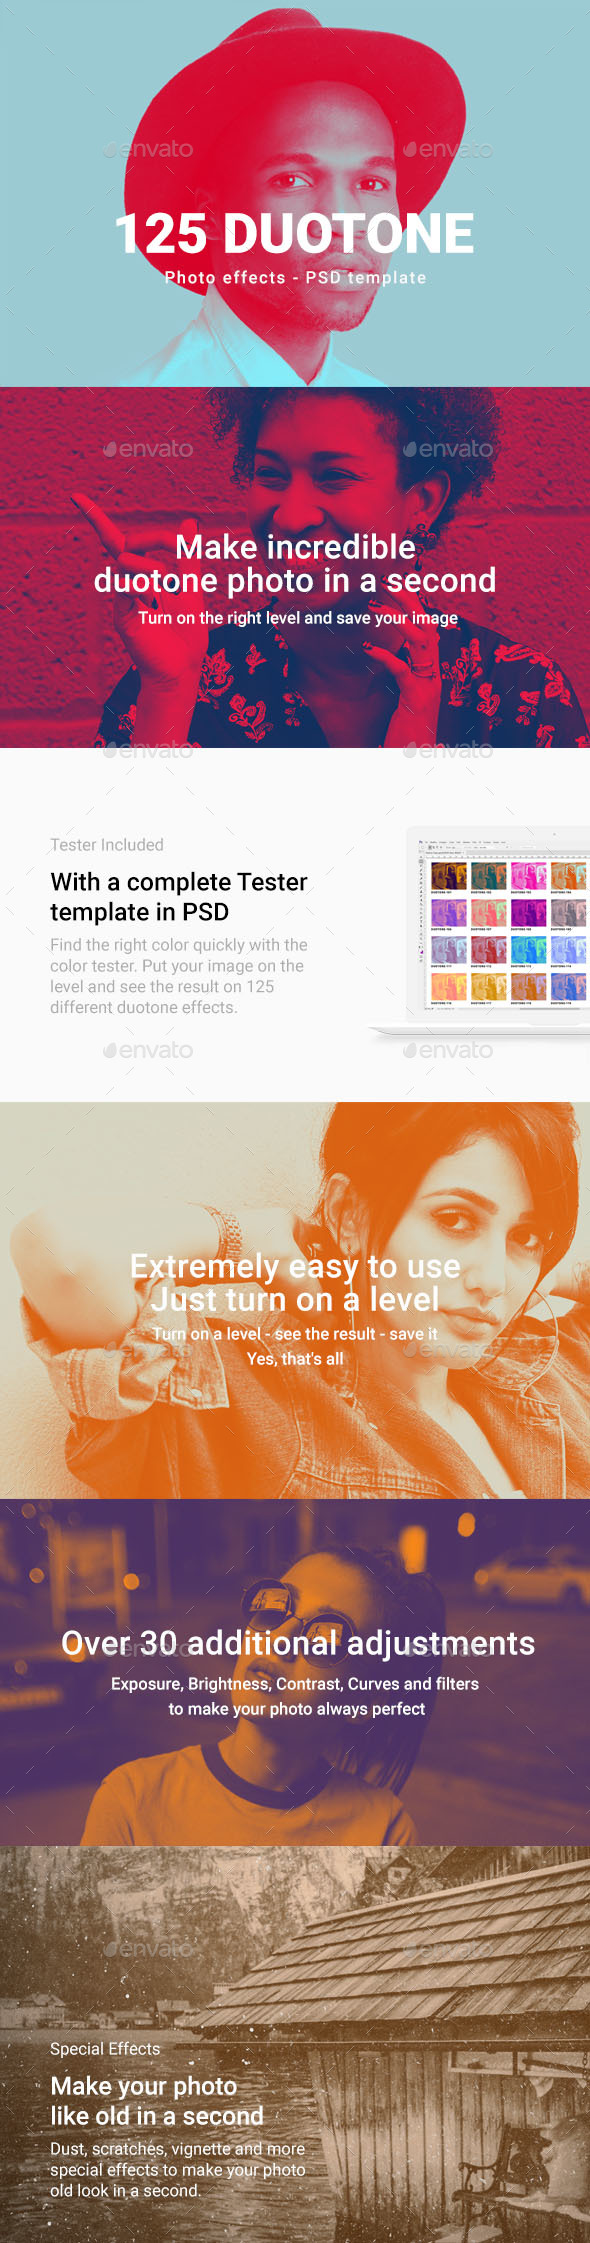 125 Duotone Color Effects Template - Urban Photo Templates